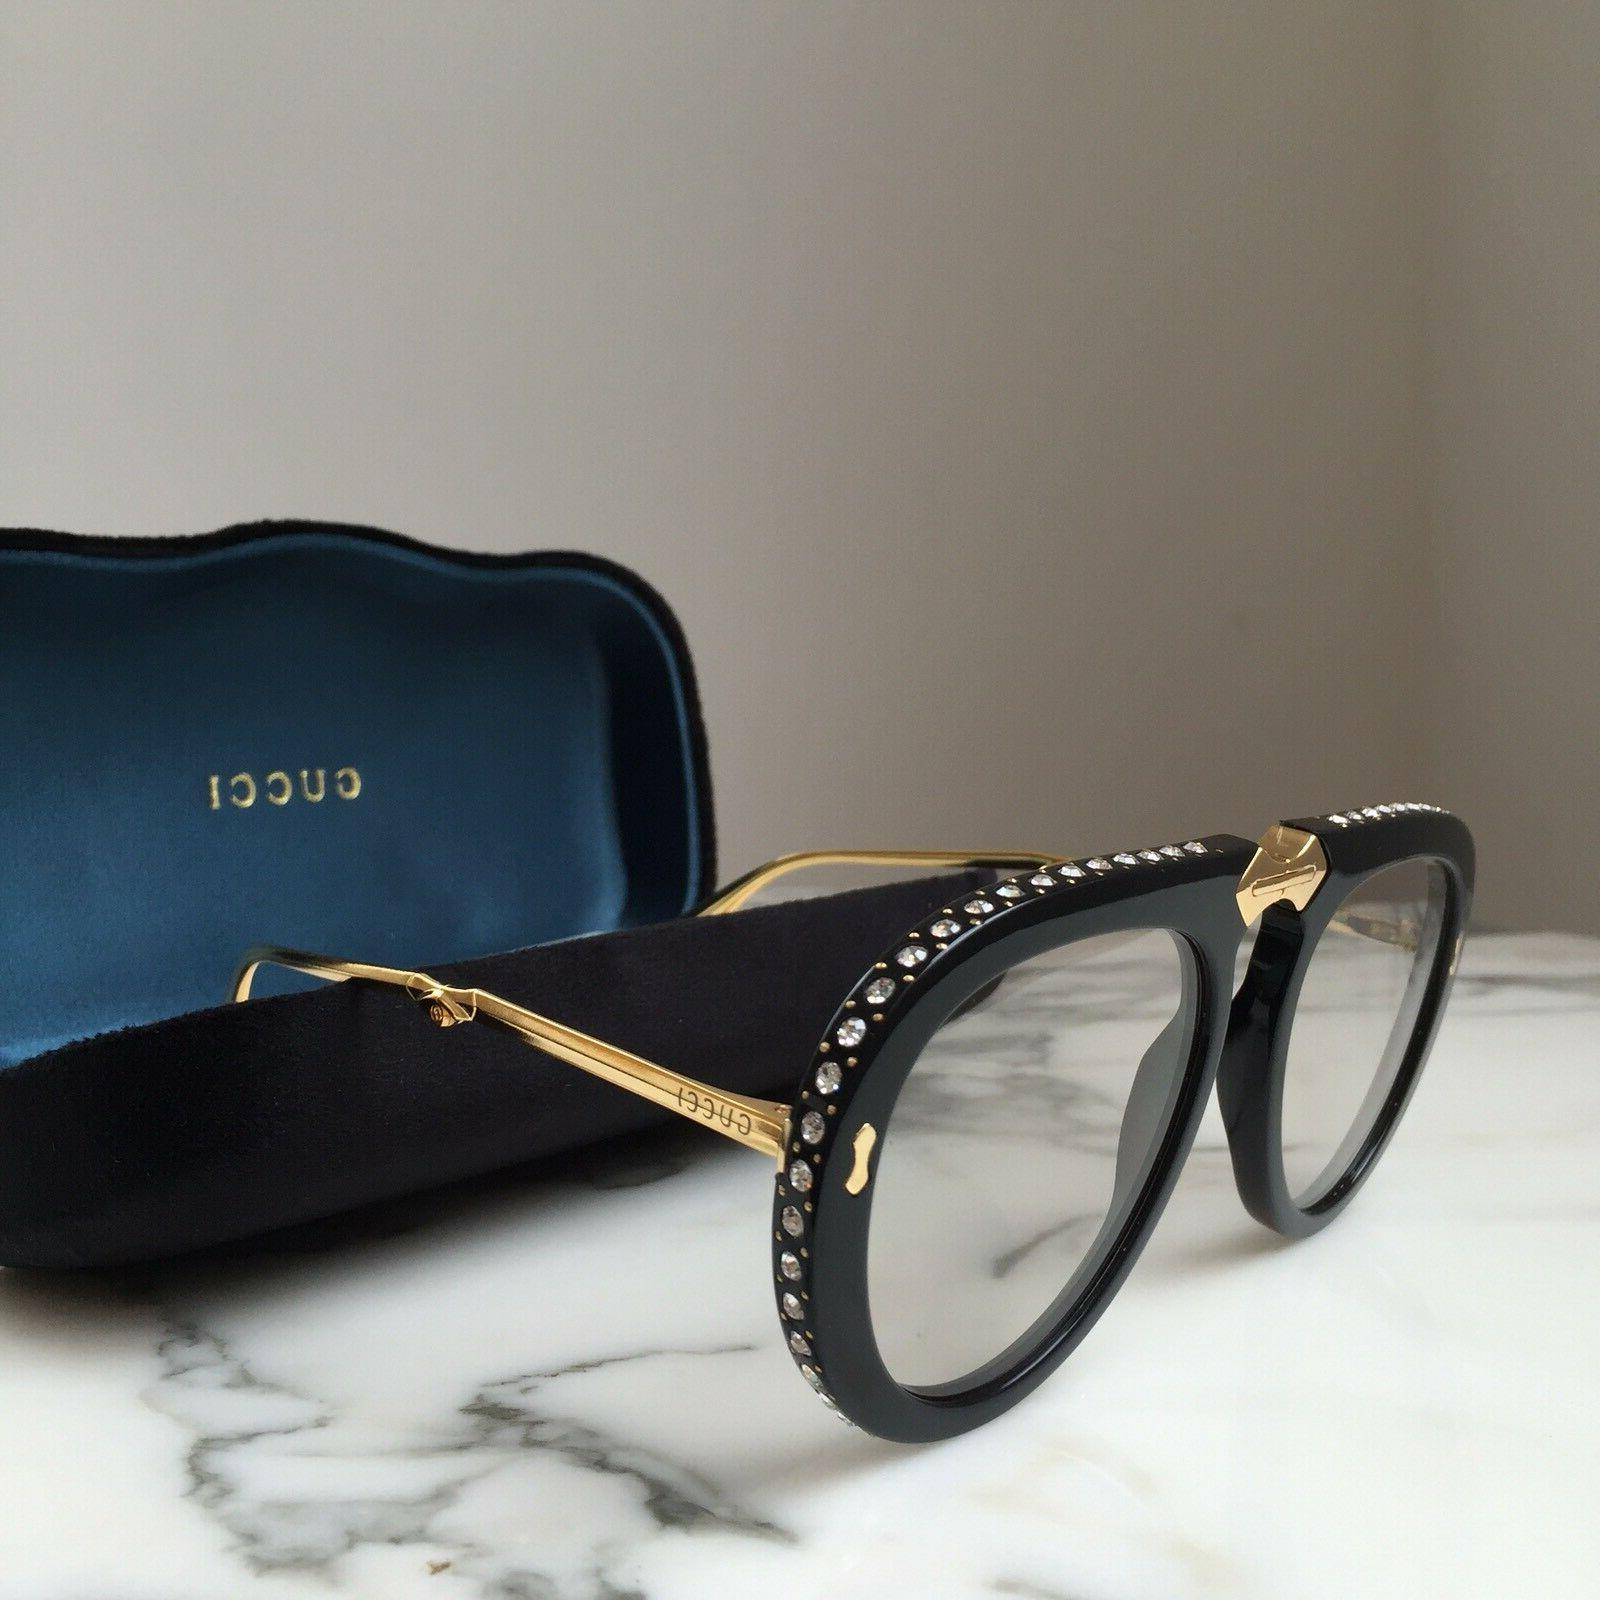 Auth GUCCI Sunglasses GG0307S 002 Gold Black Crystal Foldabl